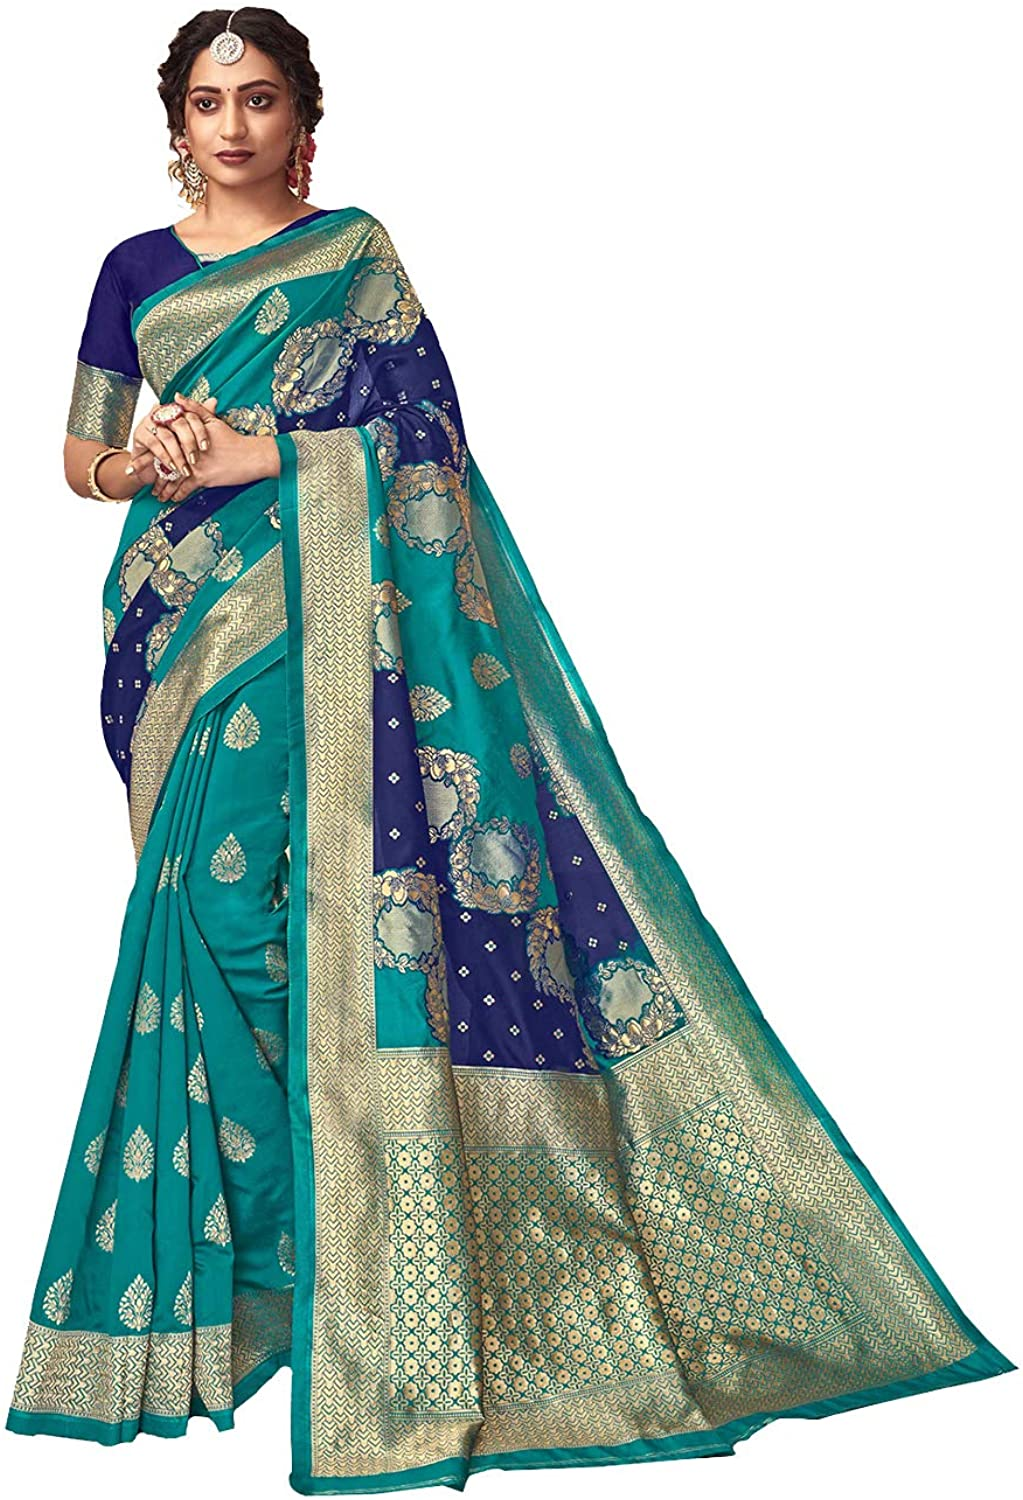 Indian Saree for Women Ethnic Sari Light Sea Green Sari with Unstitched Blouse. ICW2640-5